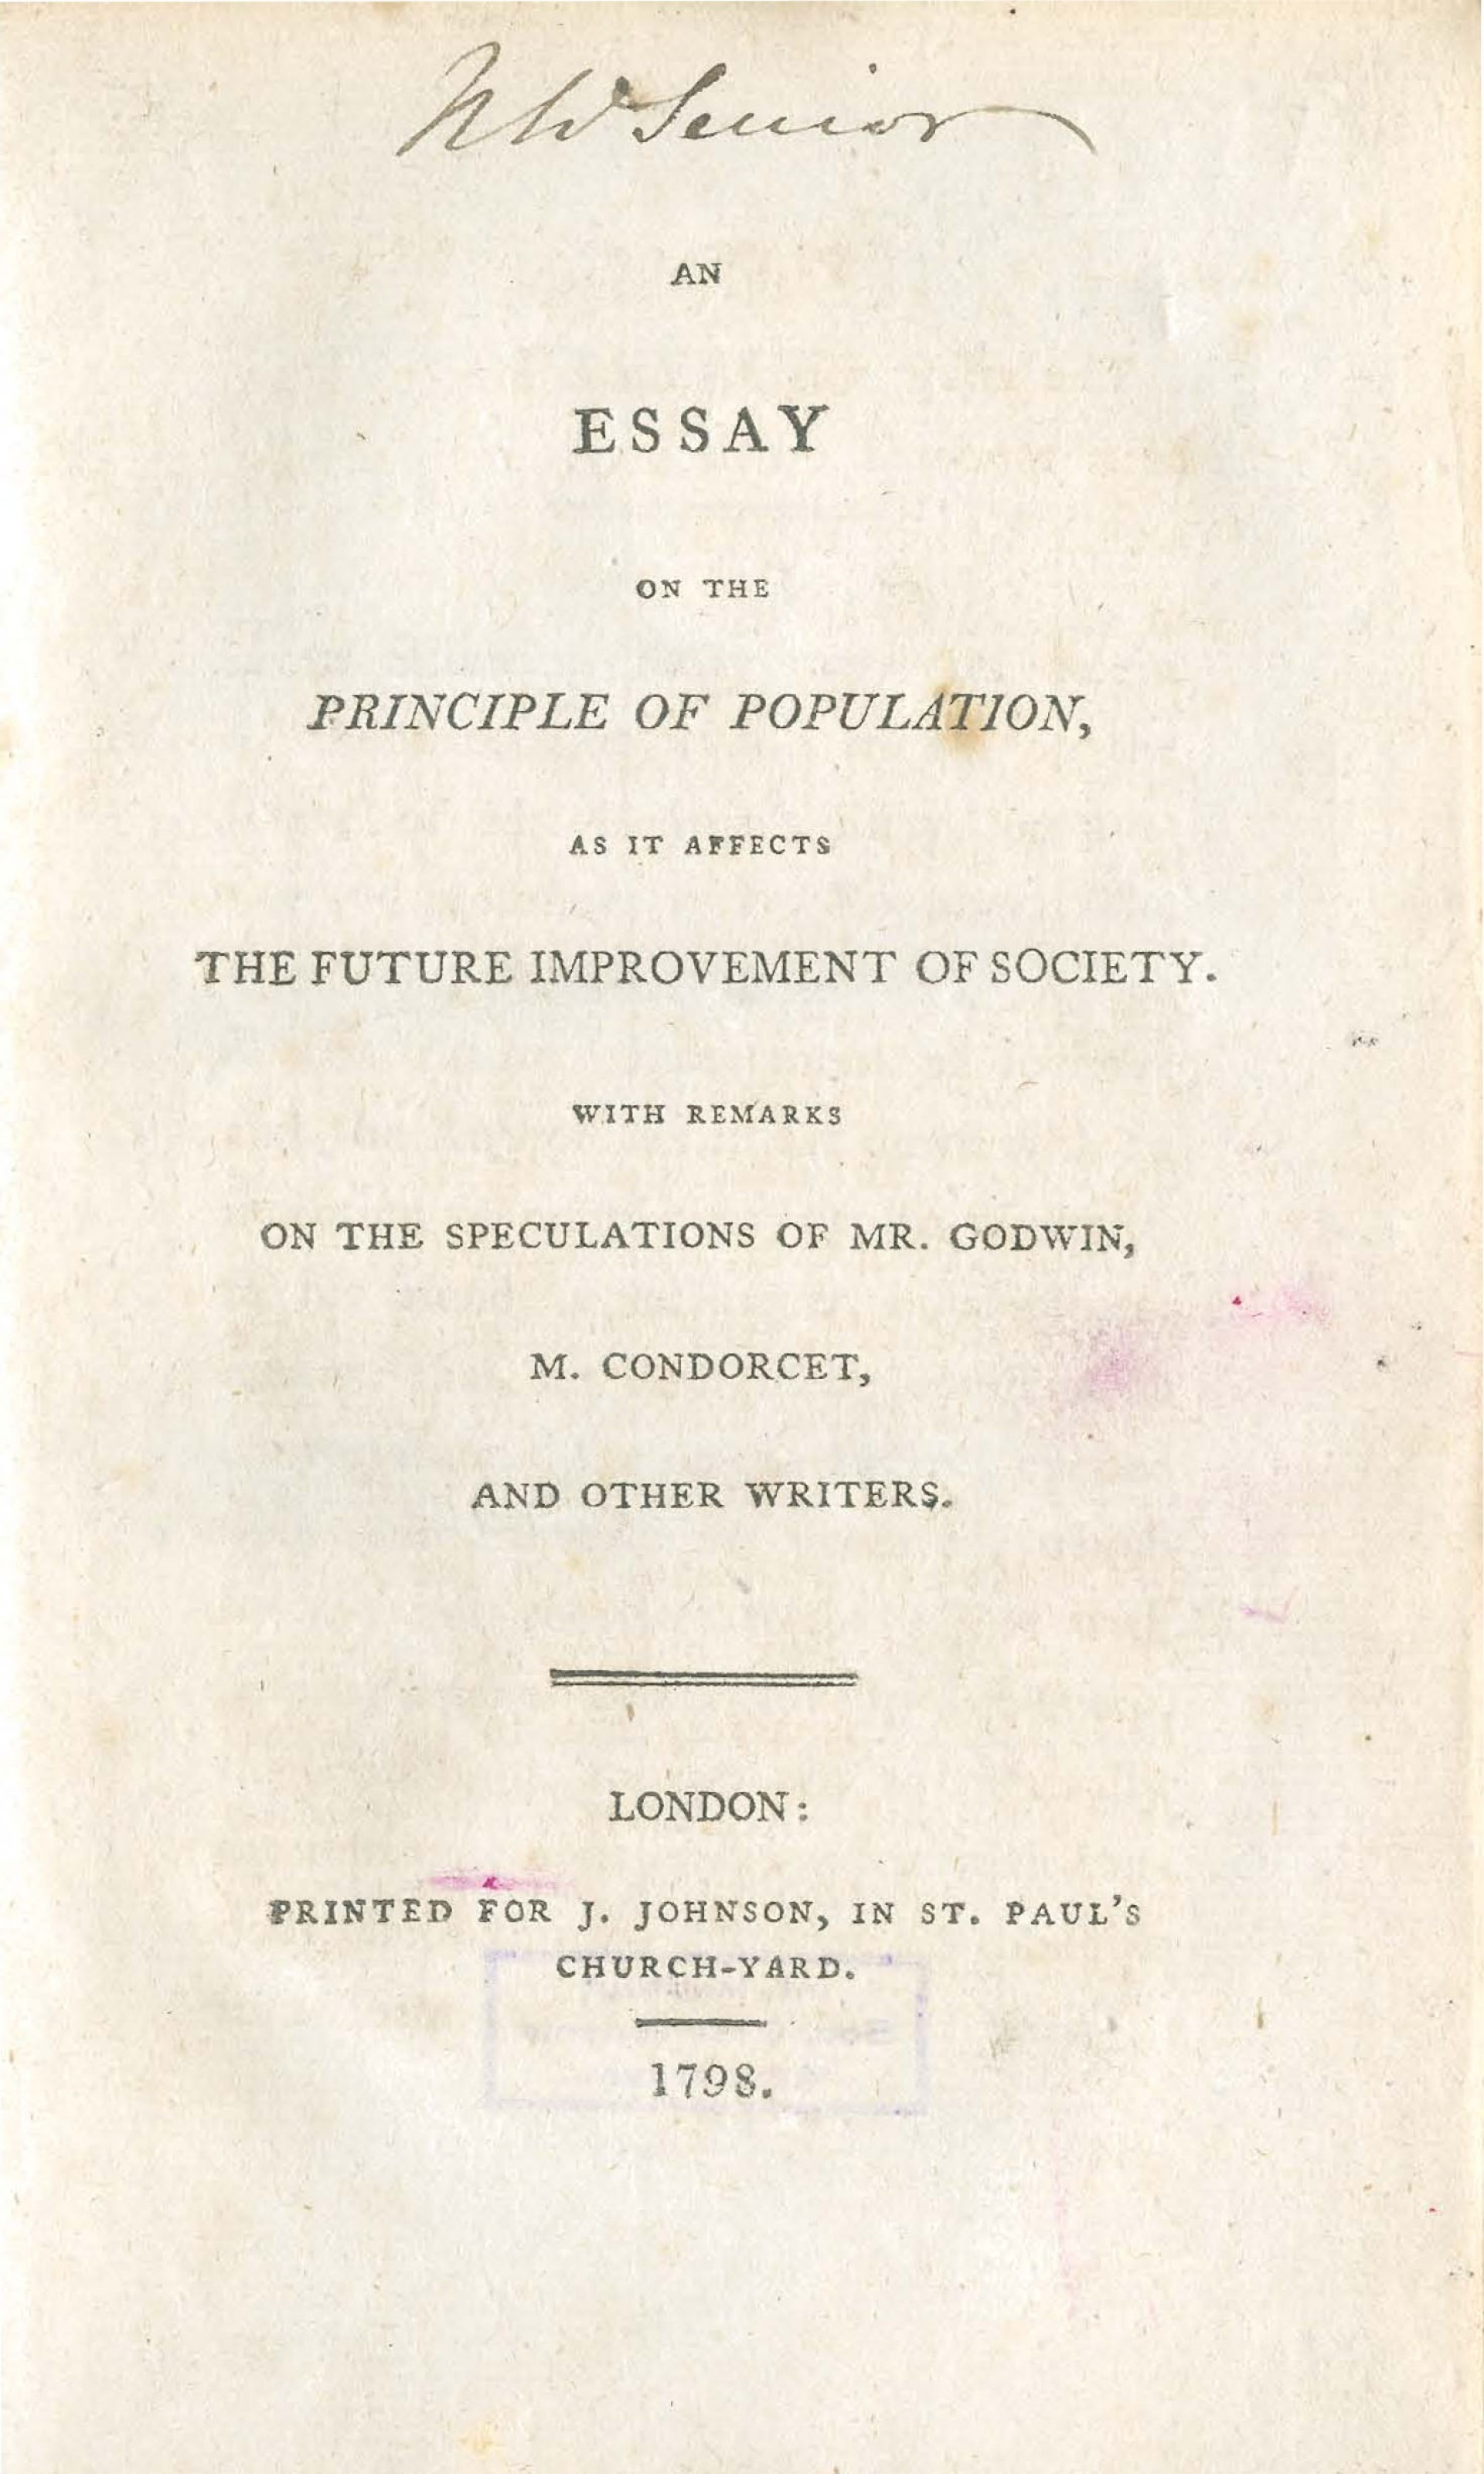 001 Essay On The Principle Of Population Singular Thomas Malthus Sparknotes Advocated Ap Euro 1920